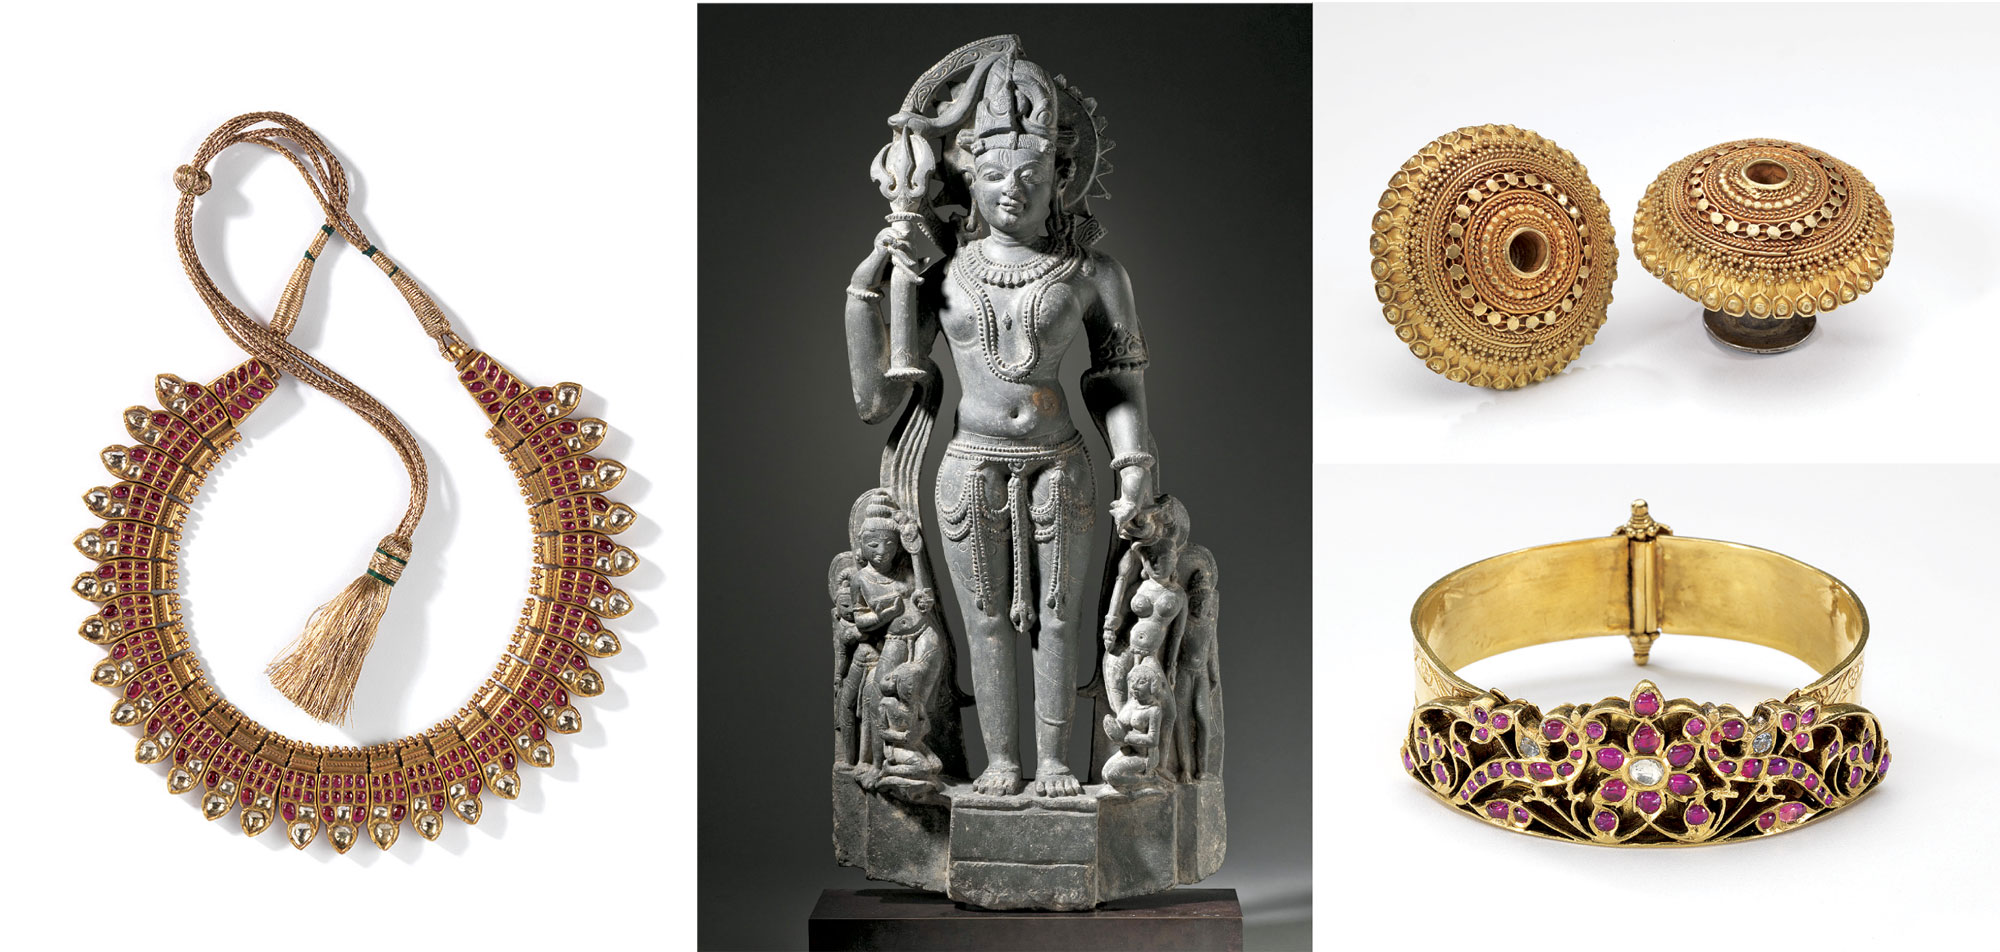 NECKLACE  (nagapada tali)  of gold, diamonds, rubies, 32.0 centimeters long, Kerala, nineteenth century. THE ANDROGYNOUS FORM OF SHIVA AND PARVATI  (Ardhanarishvara)  of black schist, 62.9 x 29.2 x 9.5 centimeters, Rajasthan, eleventh century.  Los Angeles County Museum of Art; Ancient Art Council and the Indian Art Special Purpose Fund.   Photograph courtesy of LACMA.  EARRINGS  (bhungri)  of gold, 3.5 centimeters diameter, Gujarat, early twentieth century.   ARMBAND  (nagothu)  of gold, rubies, white sapphires, 7.0 centimeters diameter, Tamil Nadu, nineteenth century.